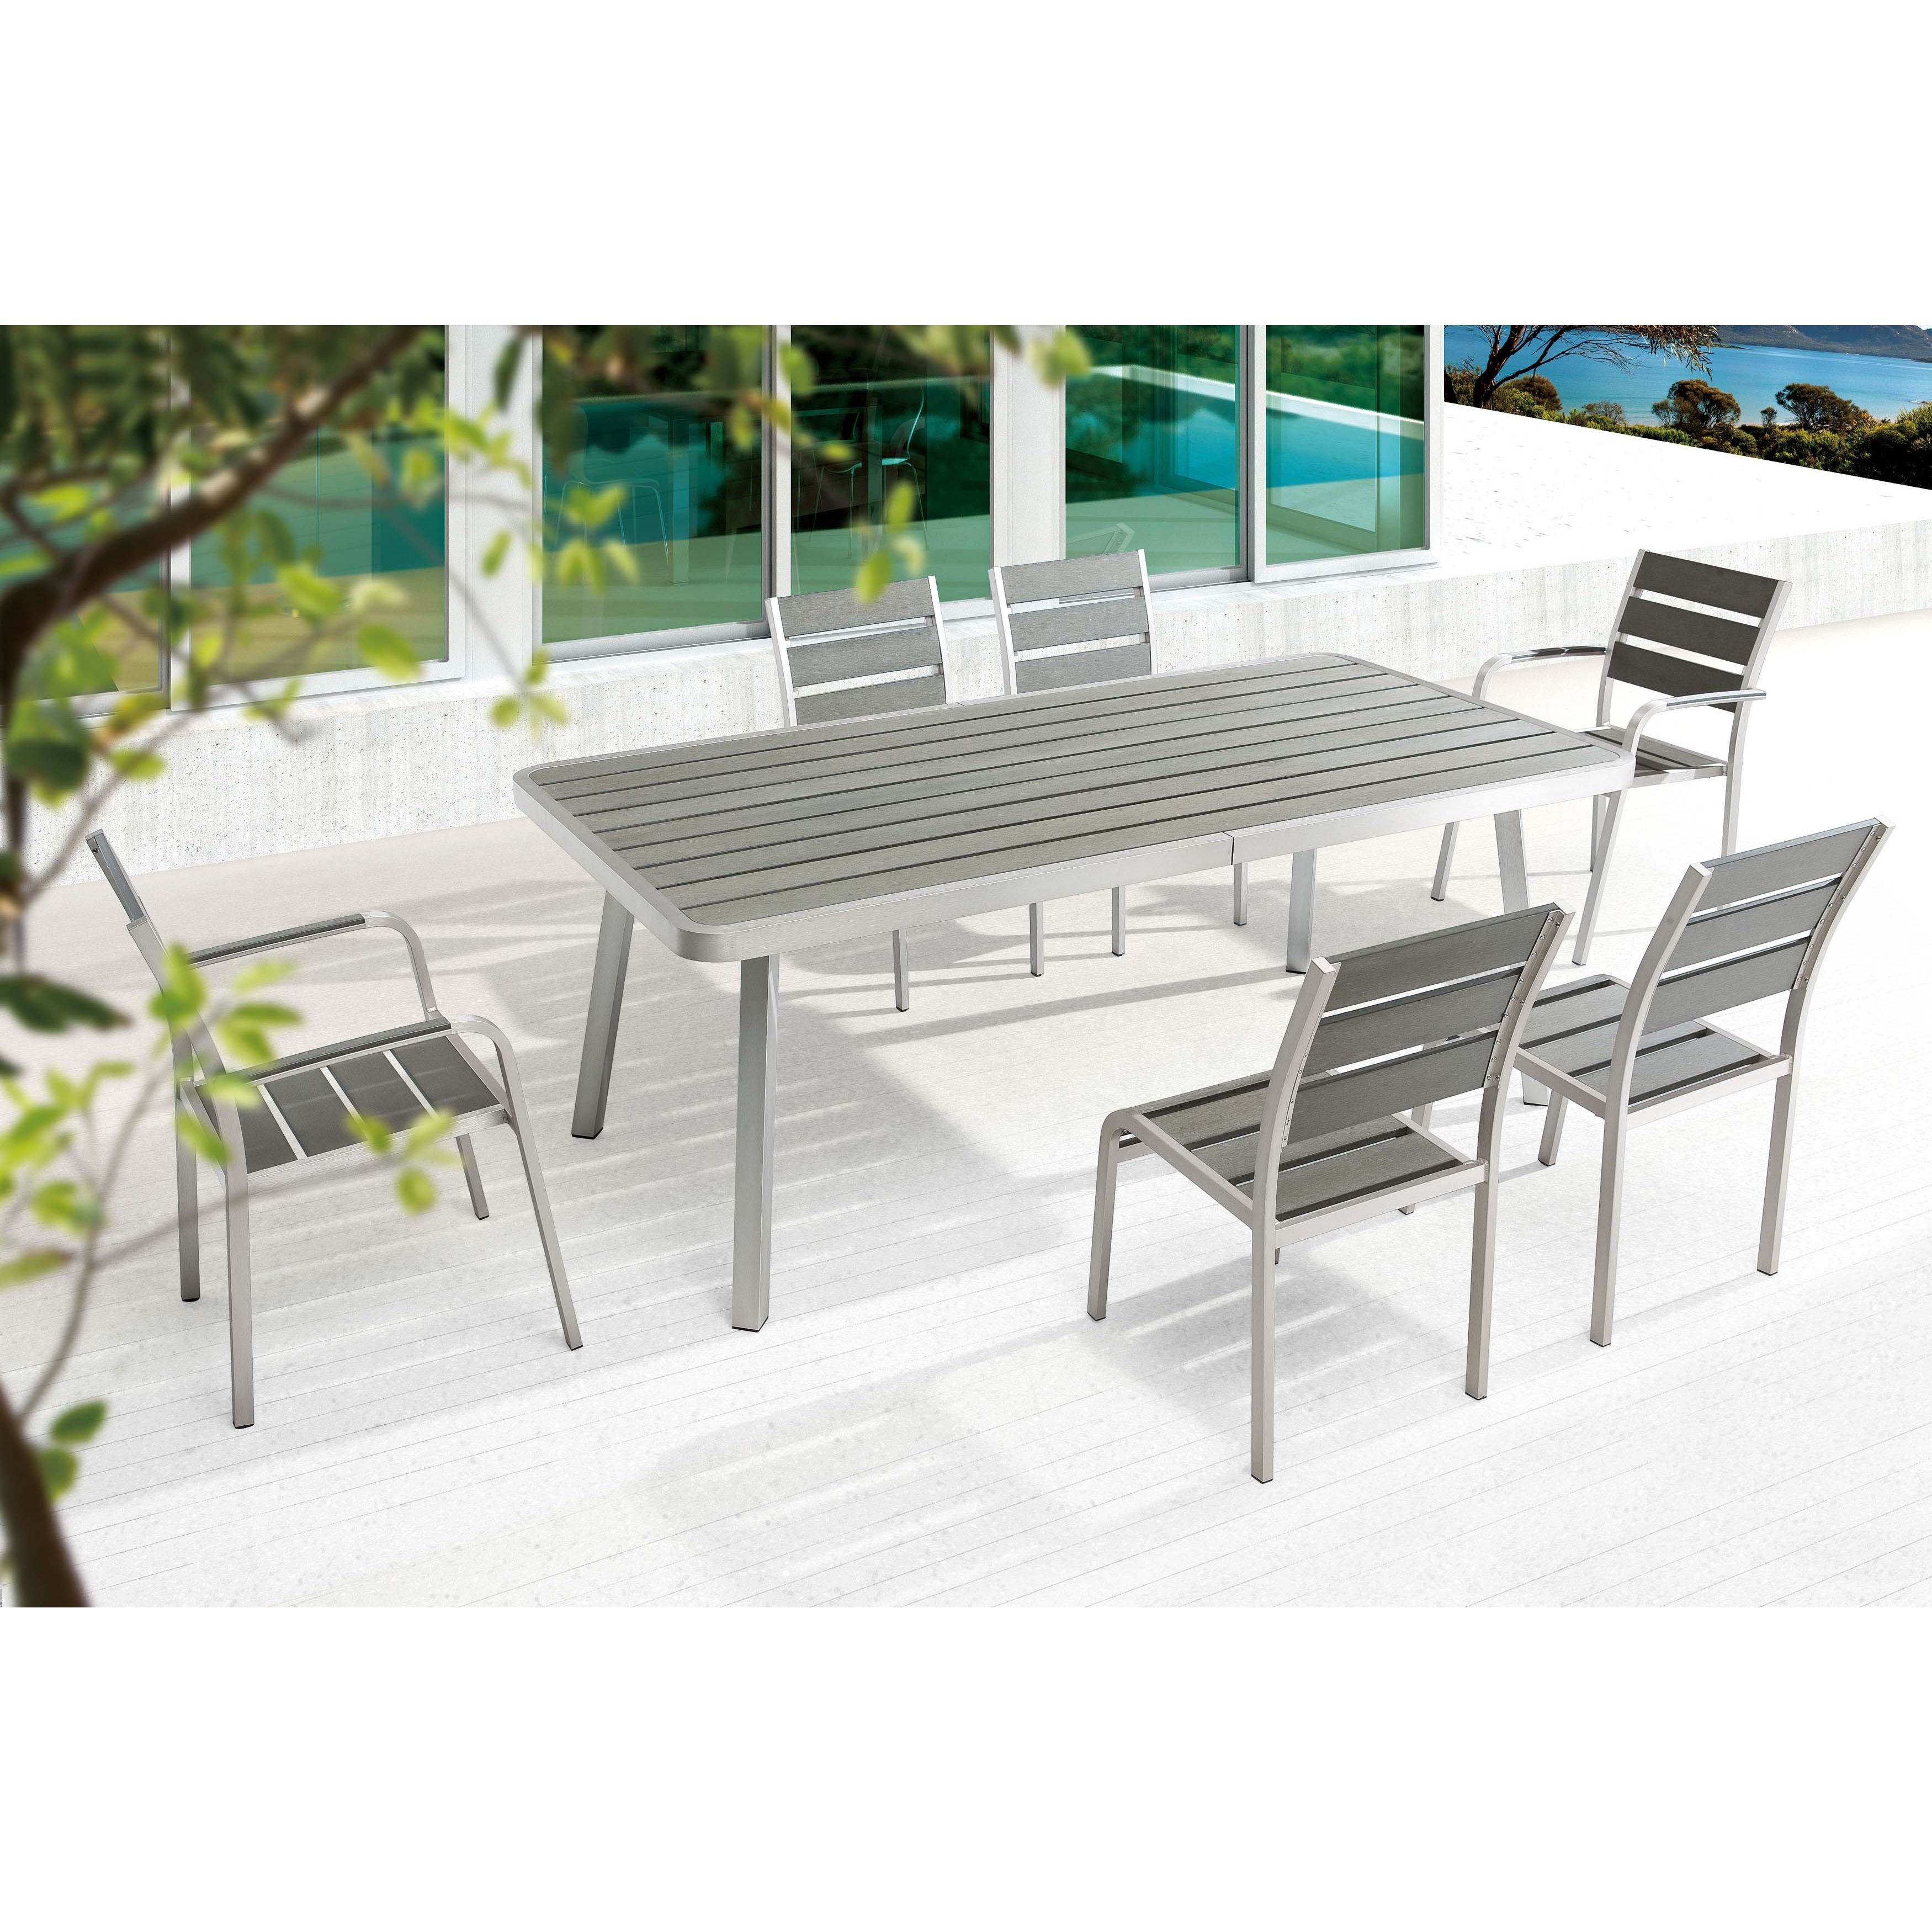 Township Brushed Aluminum Long Dining Table Overstock Com Shopping The Best Deals On Dining Tables Patio Furniture Deals Patio Table Outdoor Tables